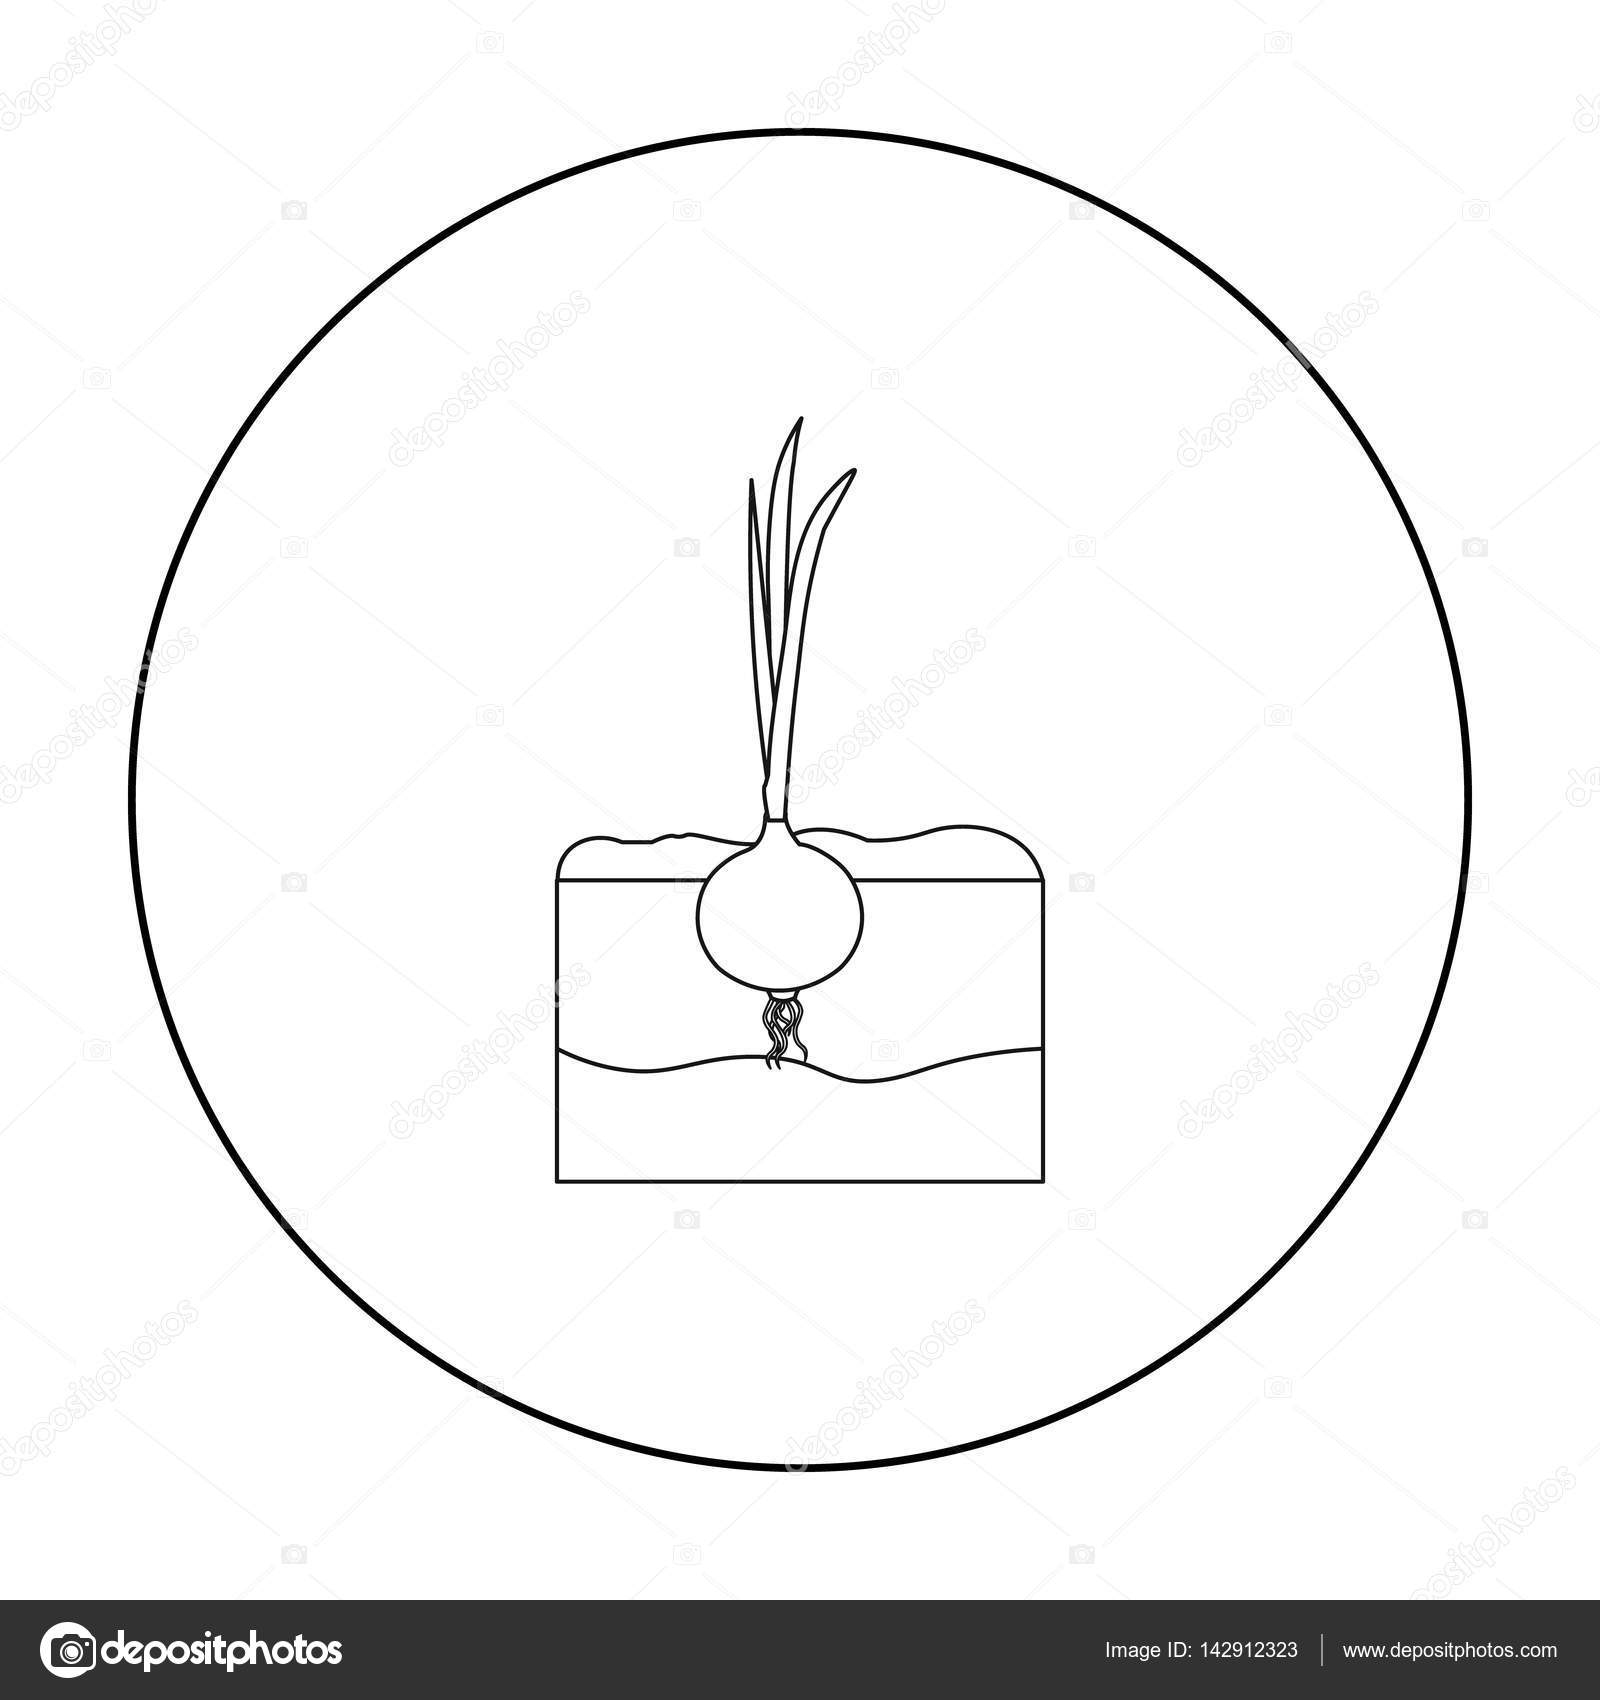 Onion icon outline single plant icon from the big farm garden onion icon outline single plant icon from the big farm garden agriculture outline ccuart Images